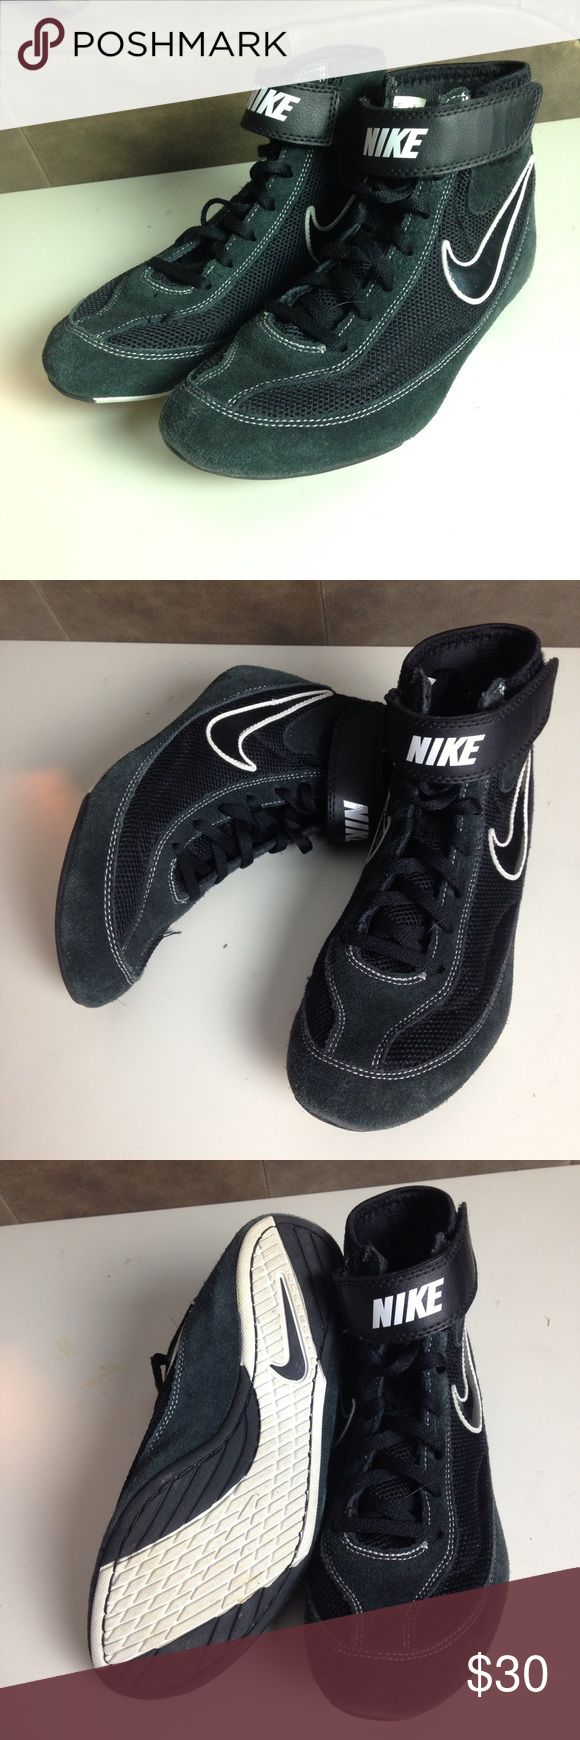 Nike wrestling shoes Nike wrestling shoes. They are almost new, they were only worn a couple times, and they are very good quality! Size 6 Nike Shoes Sneakers